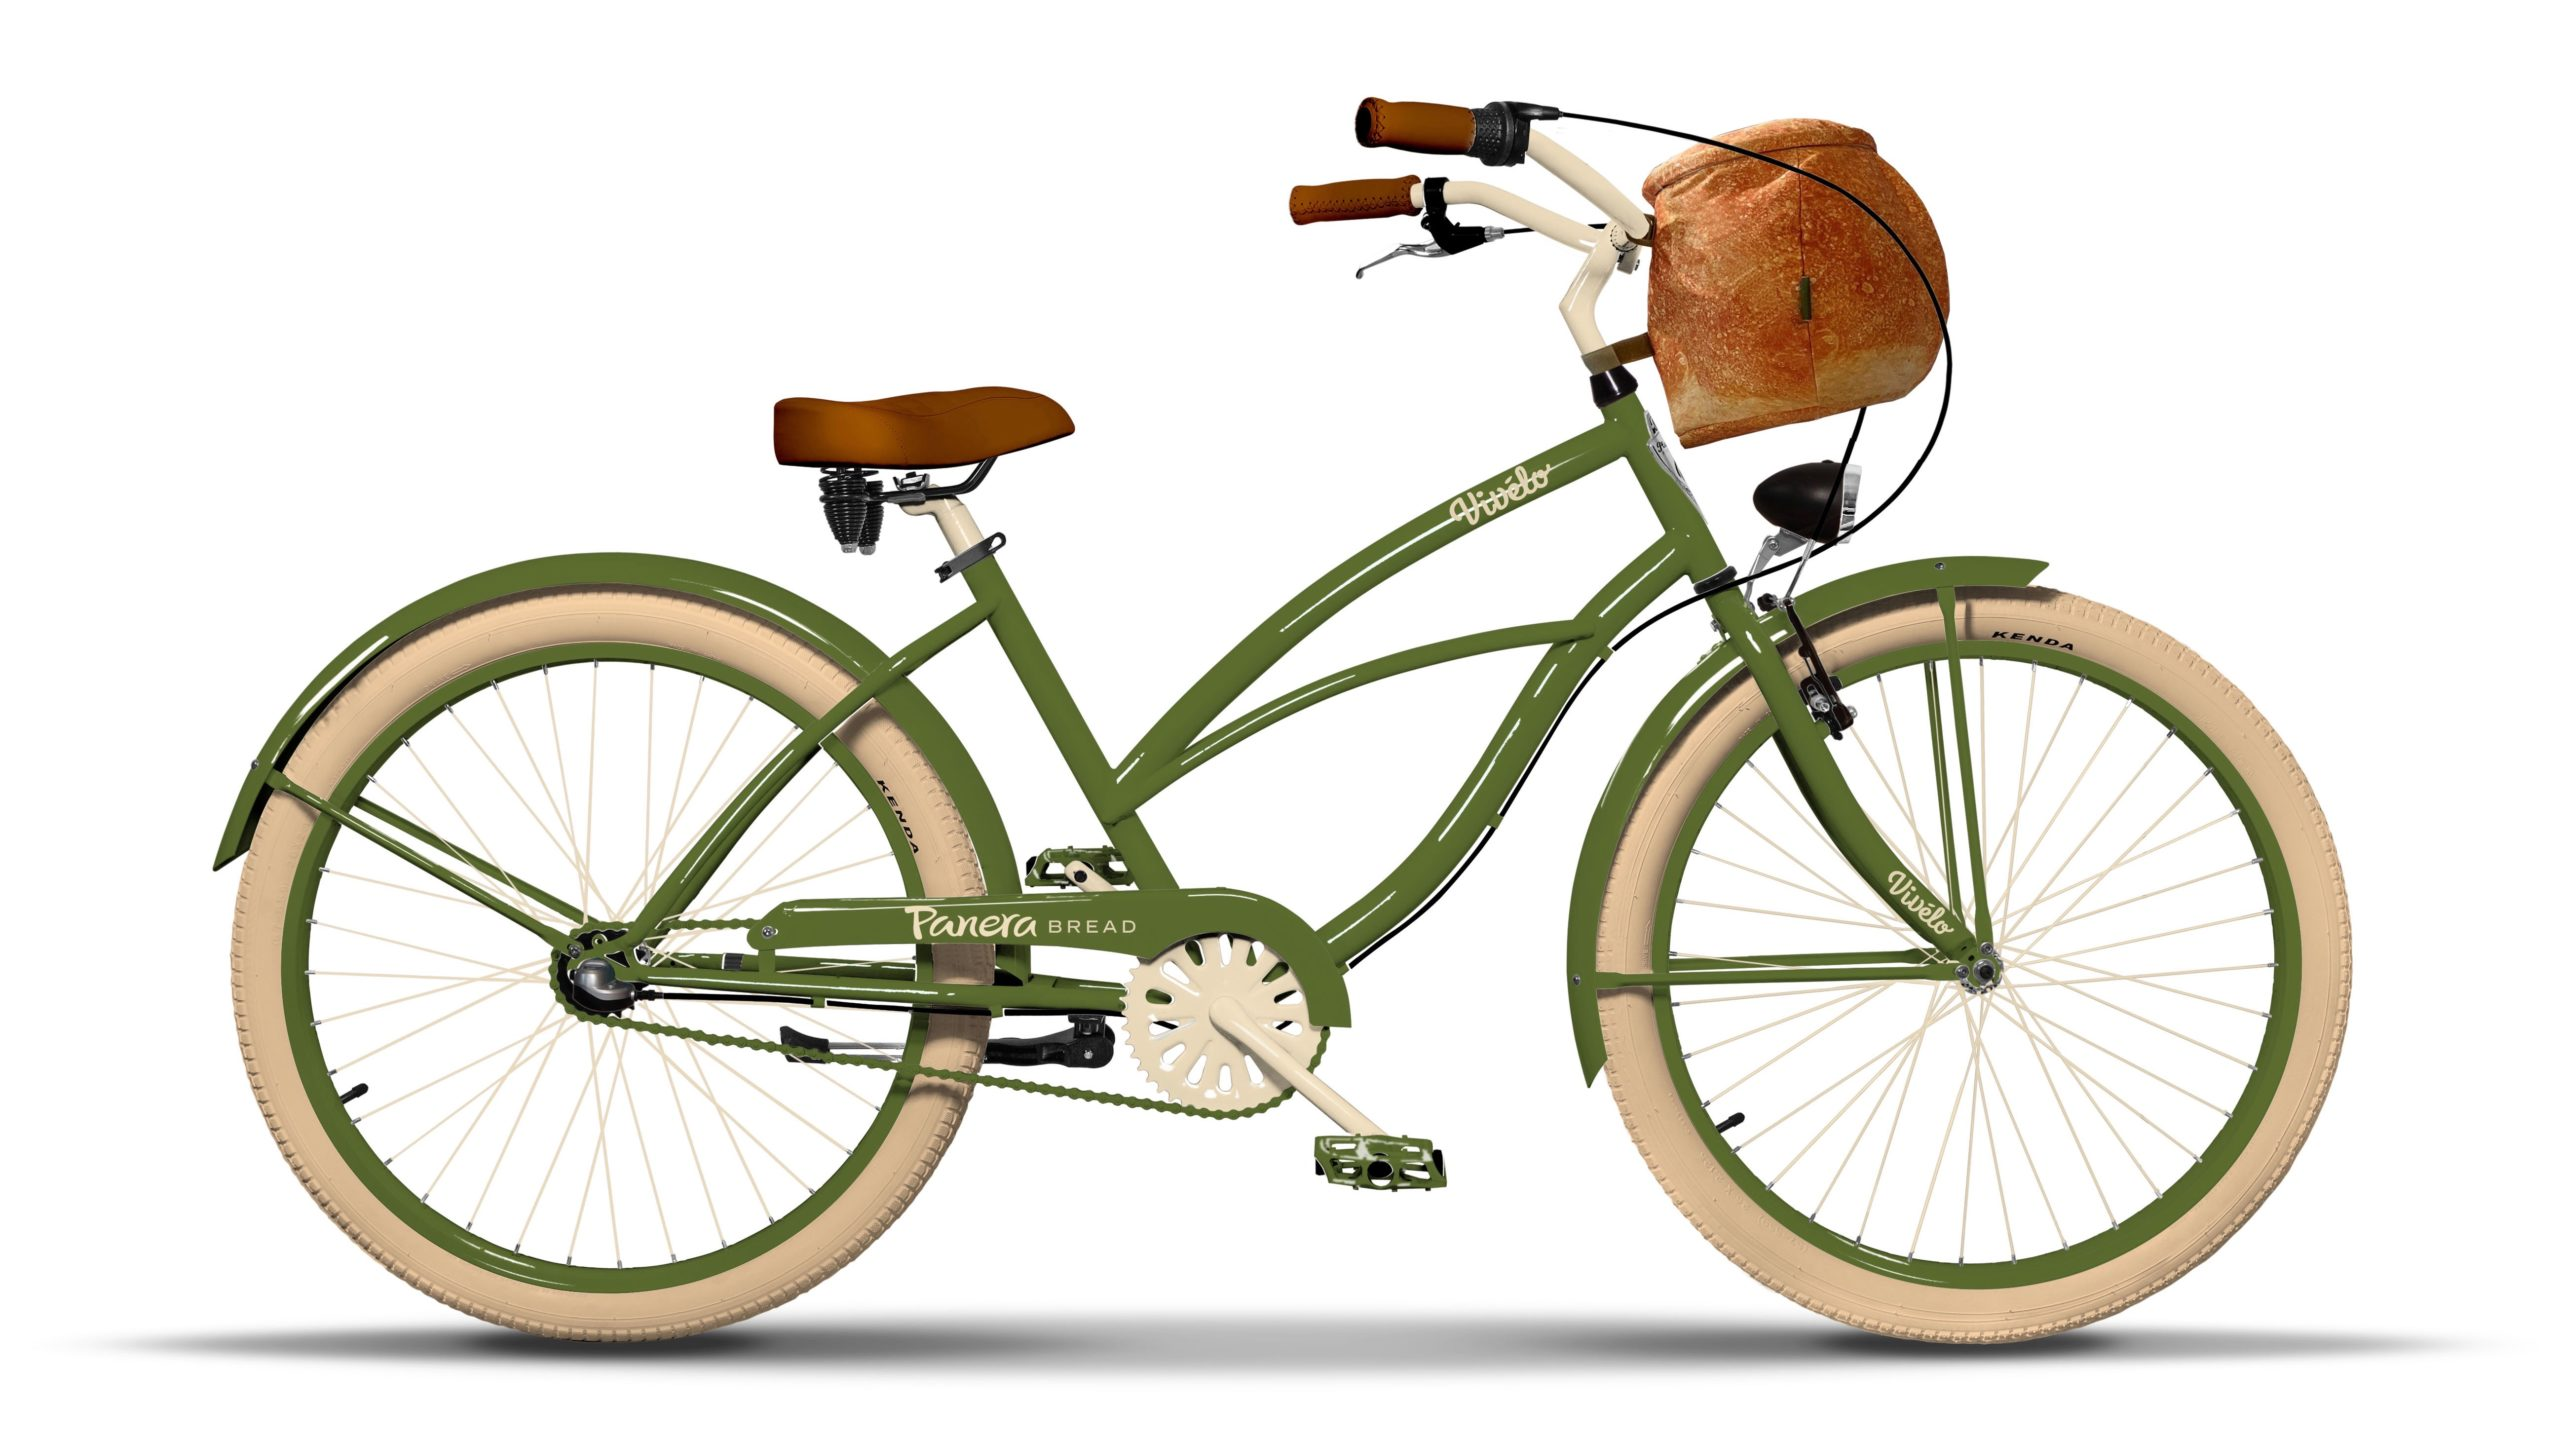 For Earth Day, Panera wants people to swap cars for more sustainable transport.